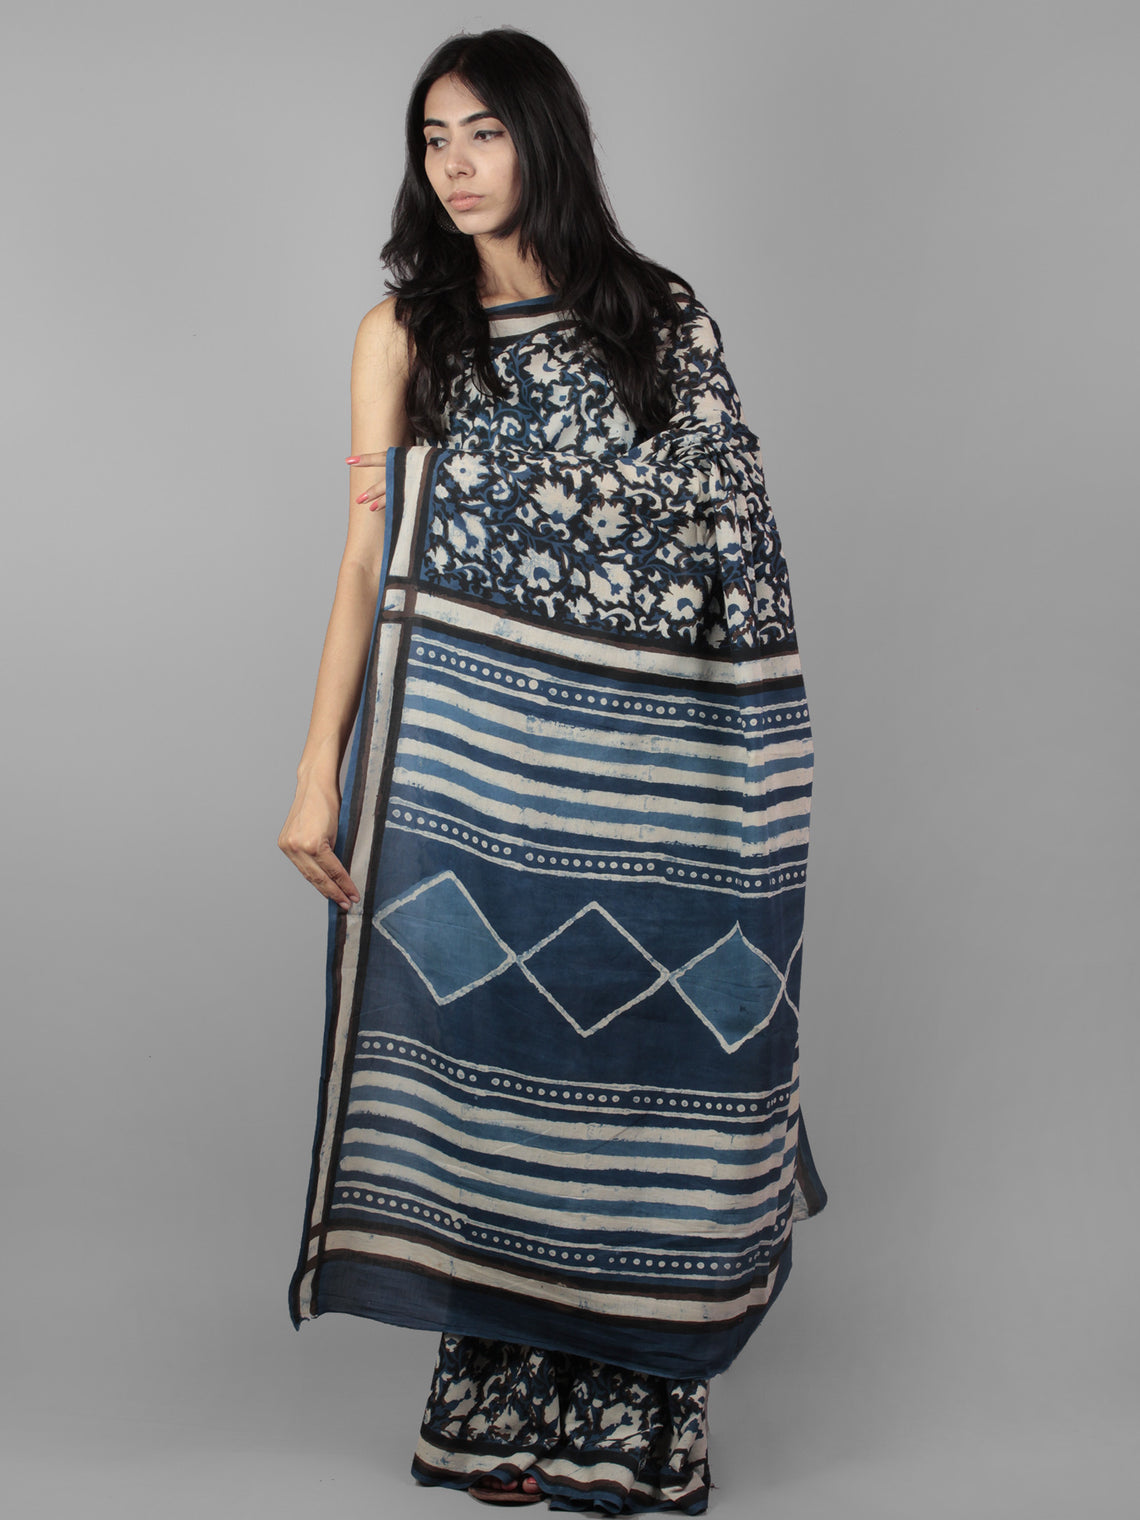 Indigo Ivory Black Bagru Dabu Hand Block Printed in Cotton Mul Saree - S031701960